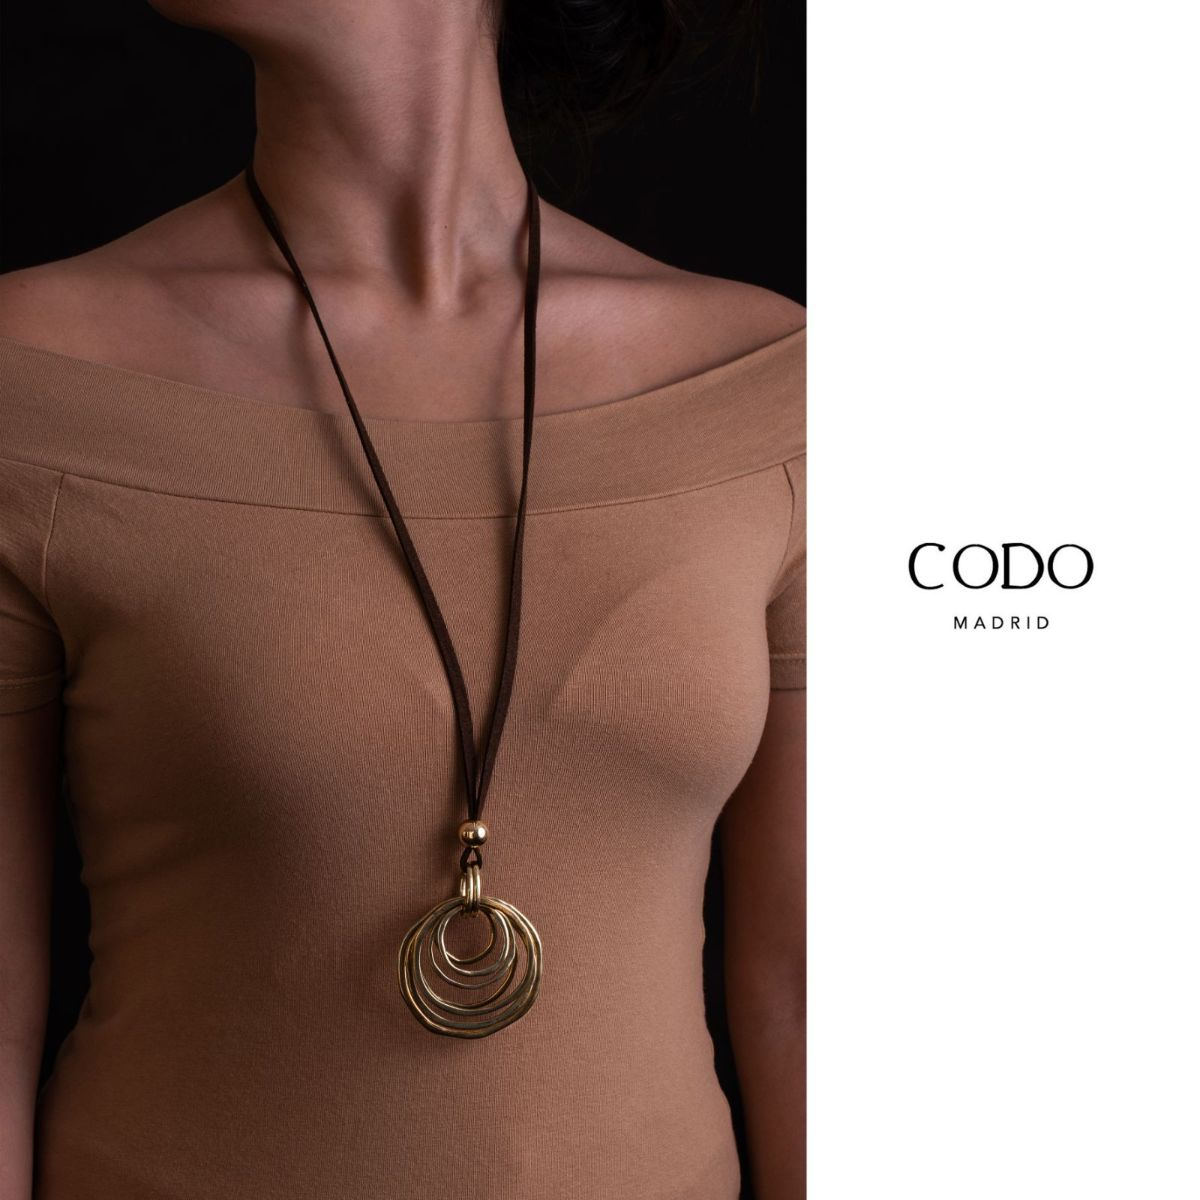 Ophelia brown suede long necklace with gold-plated metal circle pendant